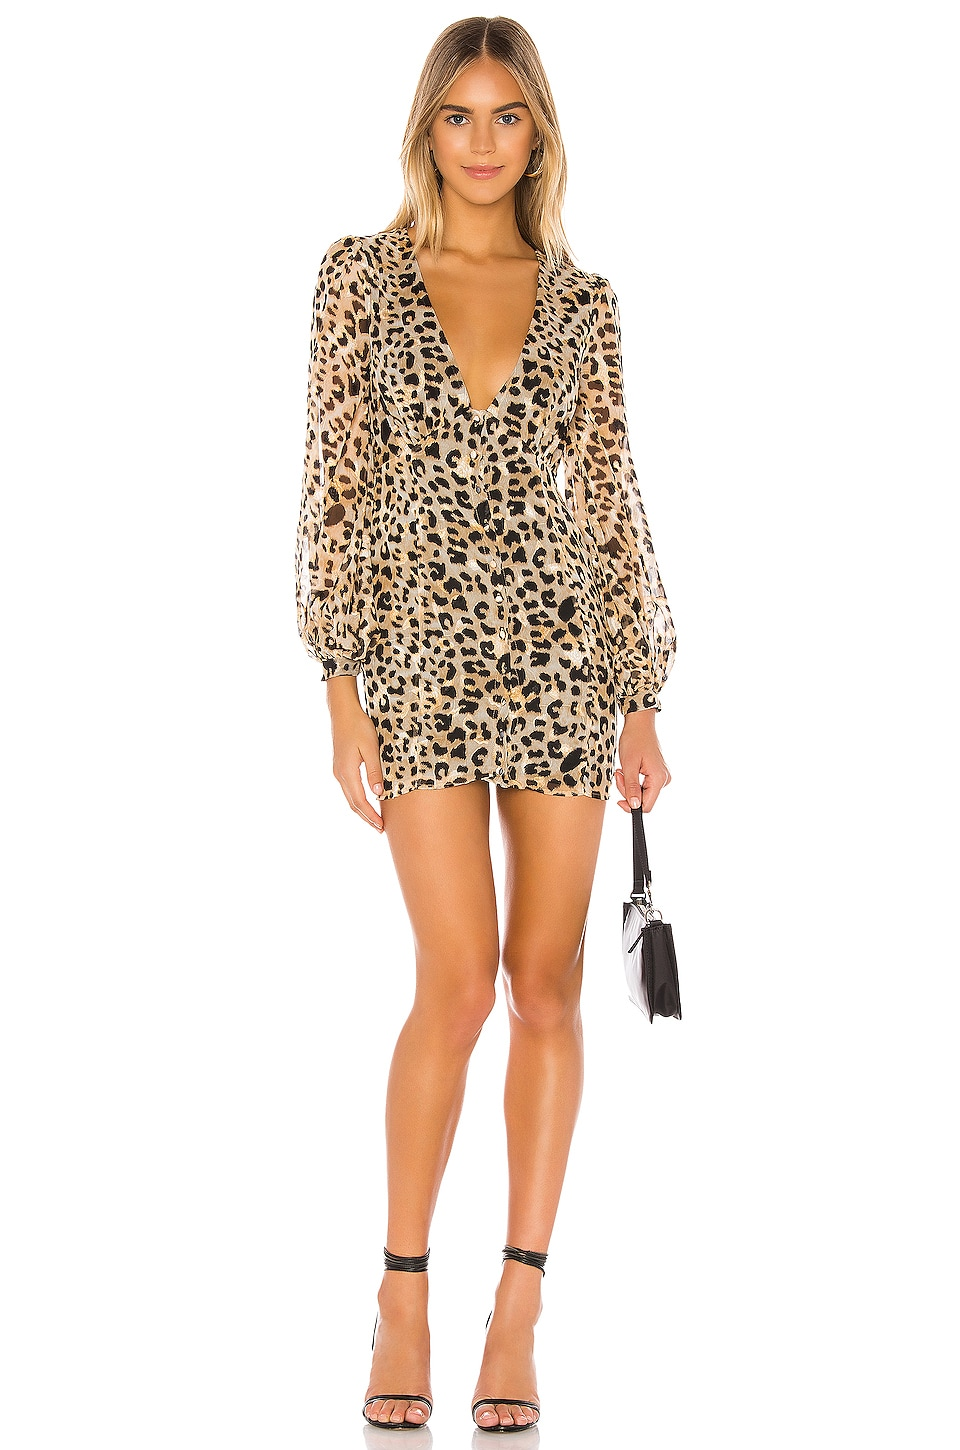 Privacy Please Julissa Mini Dress in Leopard